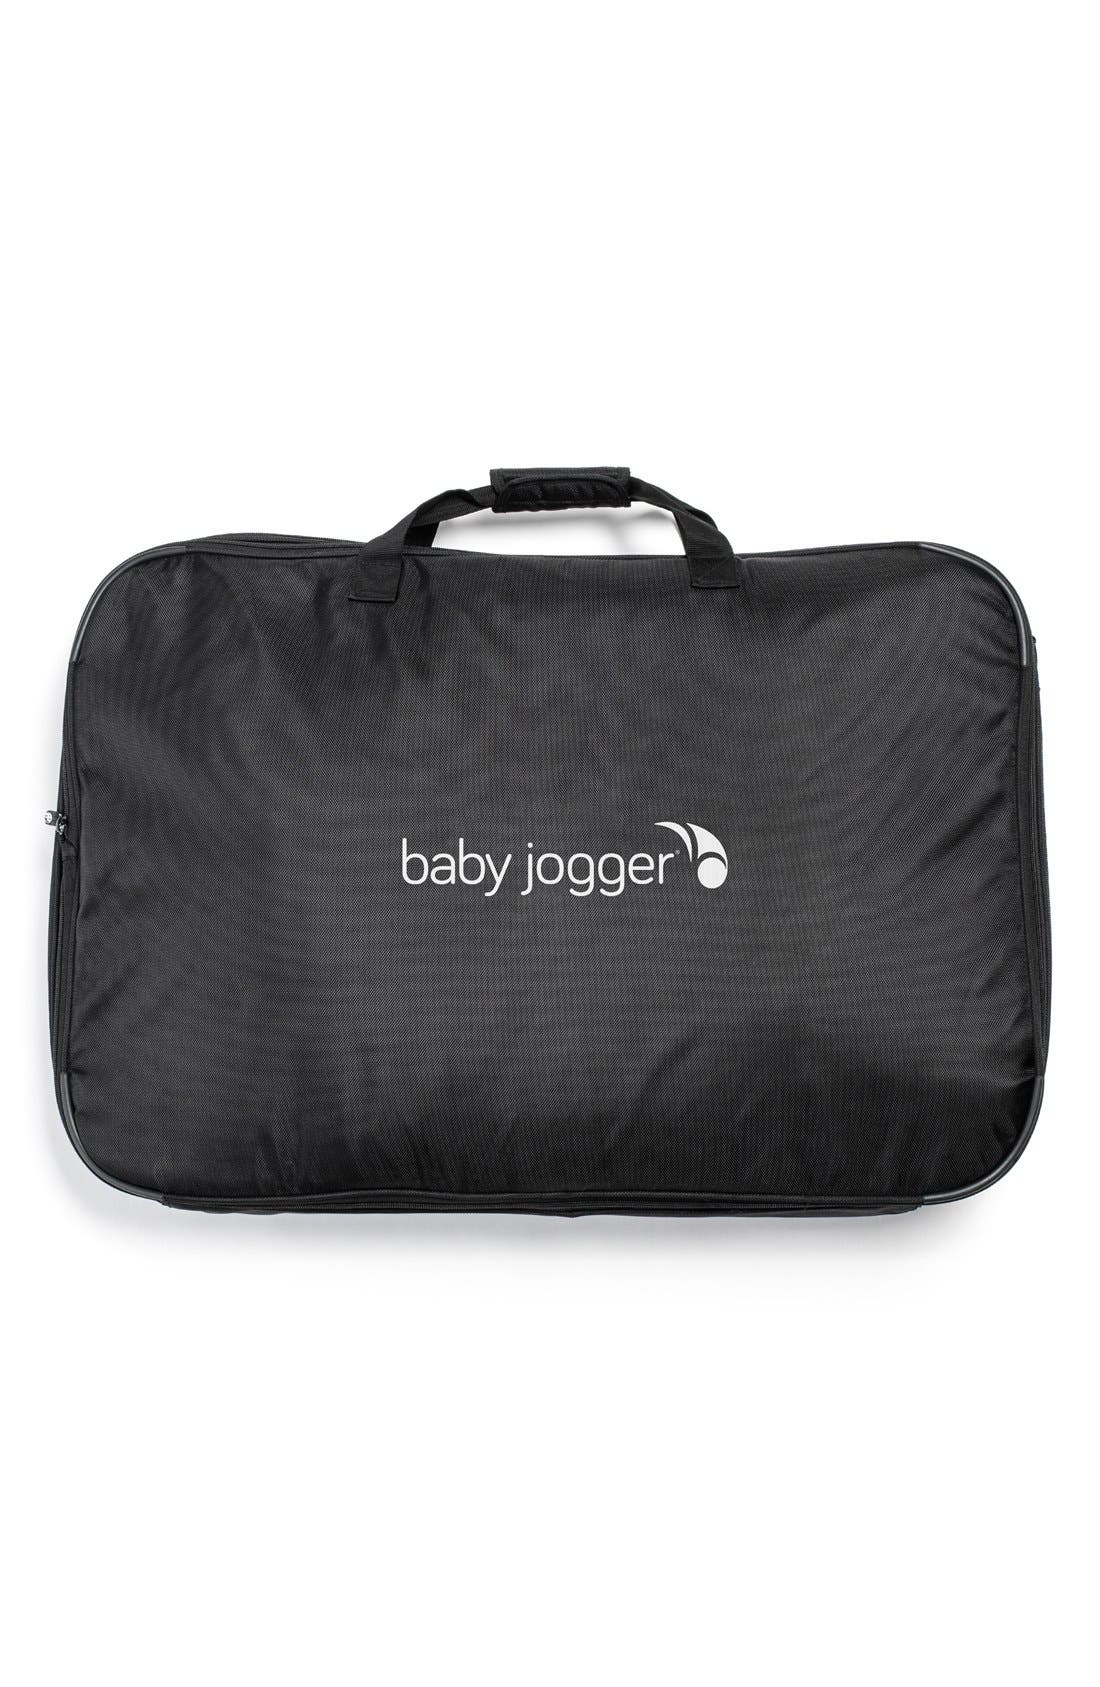 Alternate Image 1 Selected - Baby Jogger City Mini™ & City Mini GT™ Stroller Carry Bag